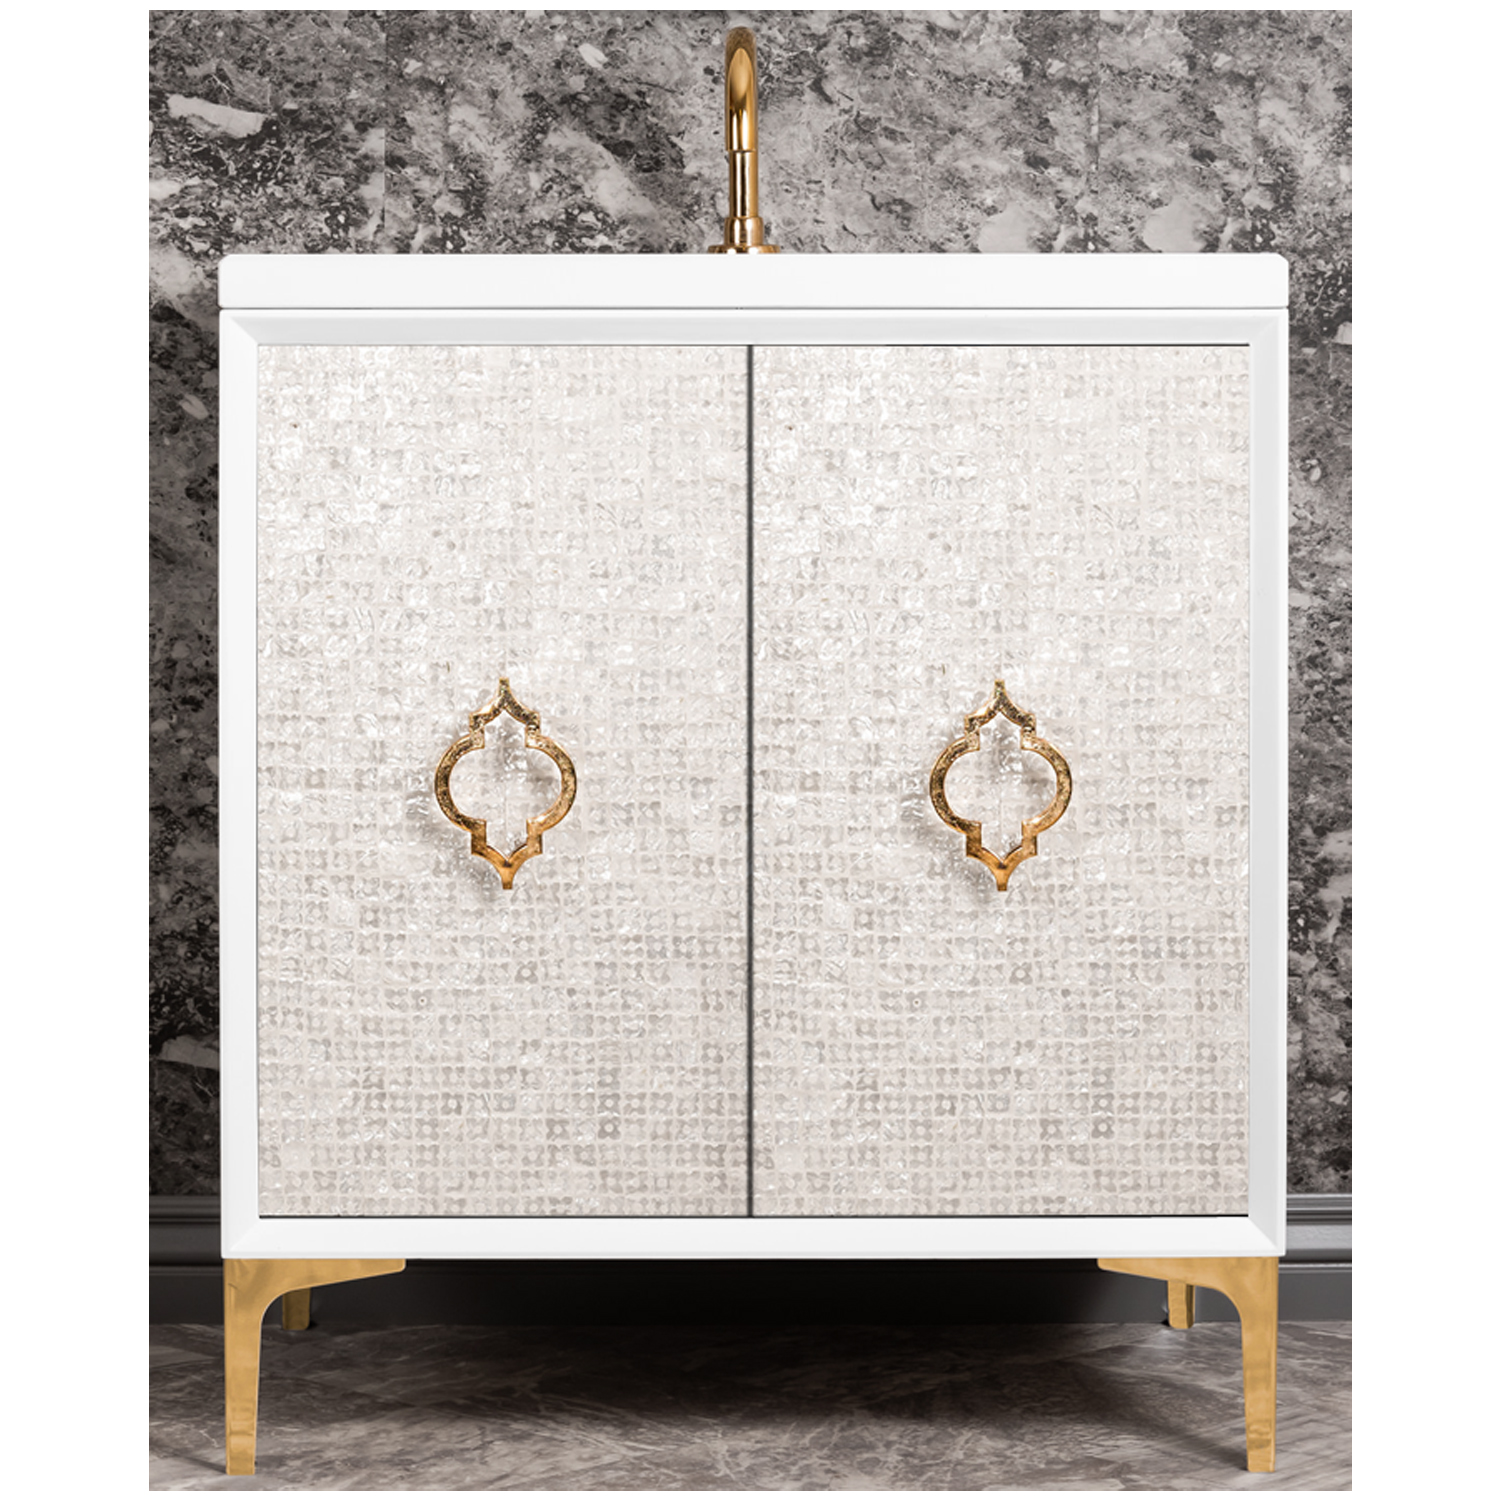 """VAN30W-004   30"""" White Mother of Pearl with Arabesque - Shown with PB (Polished Brass Finish)"""